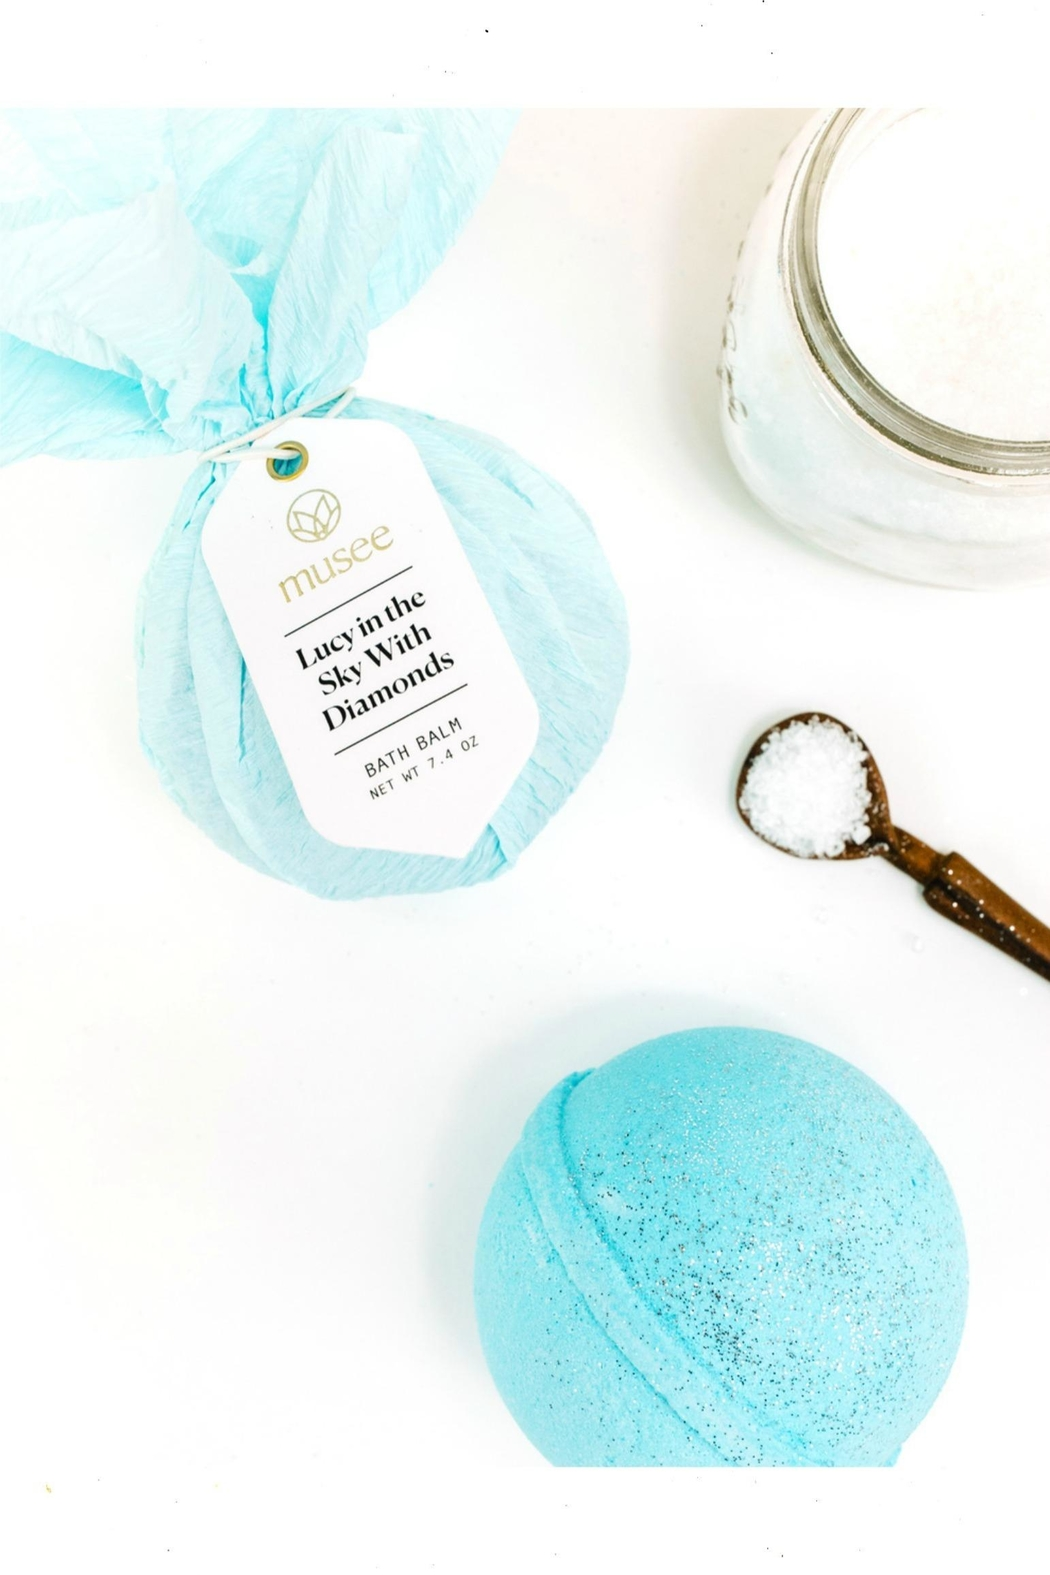 Musee Bath Lucy-In-The-Sky-With-Diamonds Bath Balm - Main Image